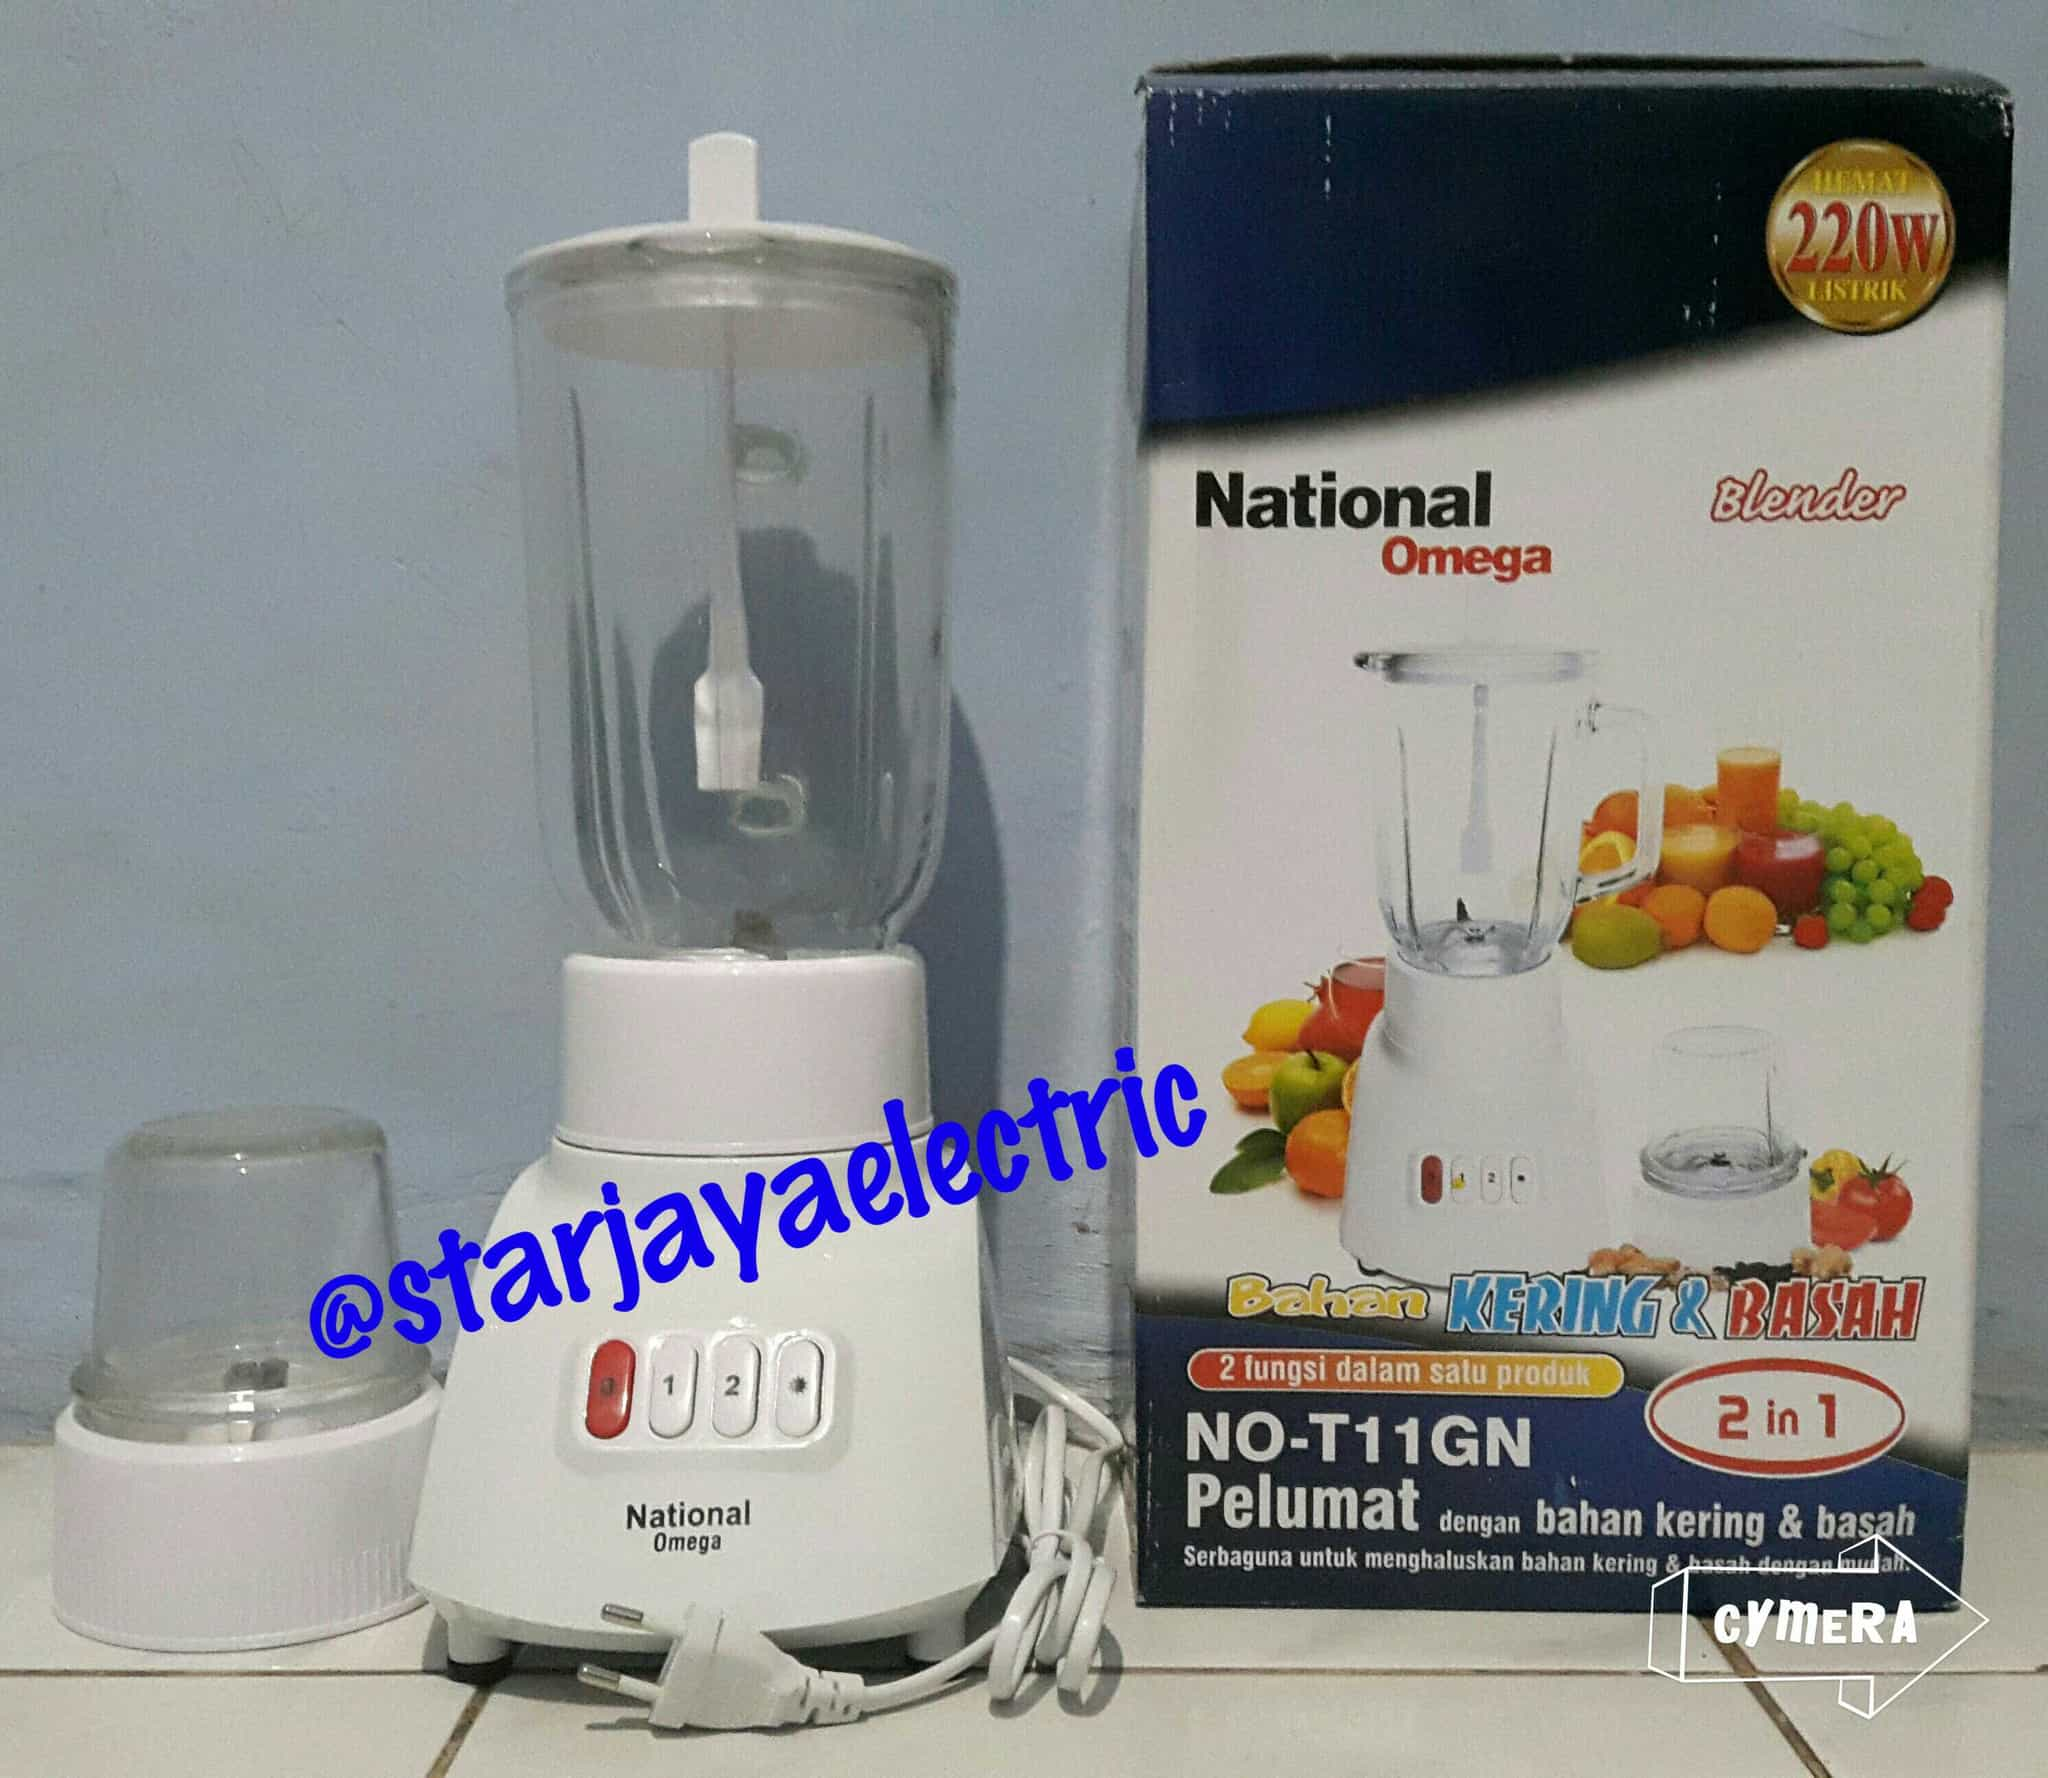 Jual Blender National Omega Glass Kaca 2in1 No T11gn Star Jaya Mixer Natonal Electric Tokopedia